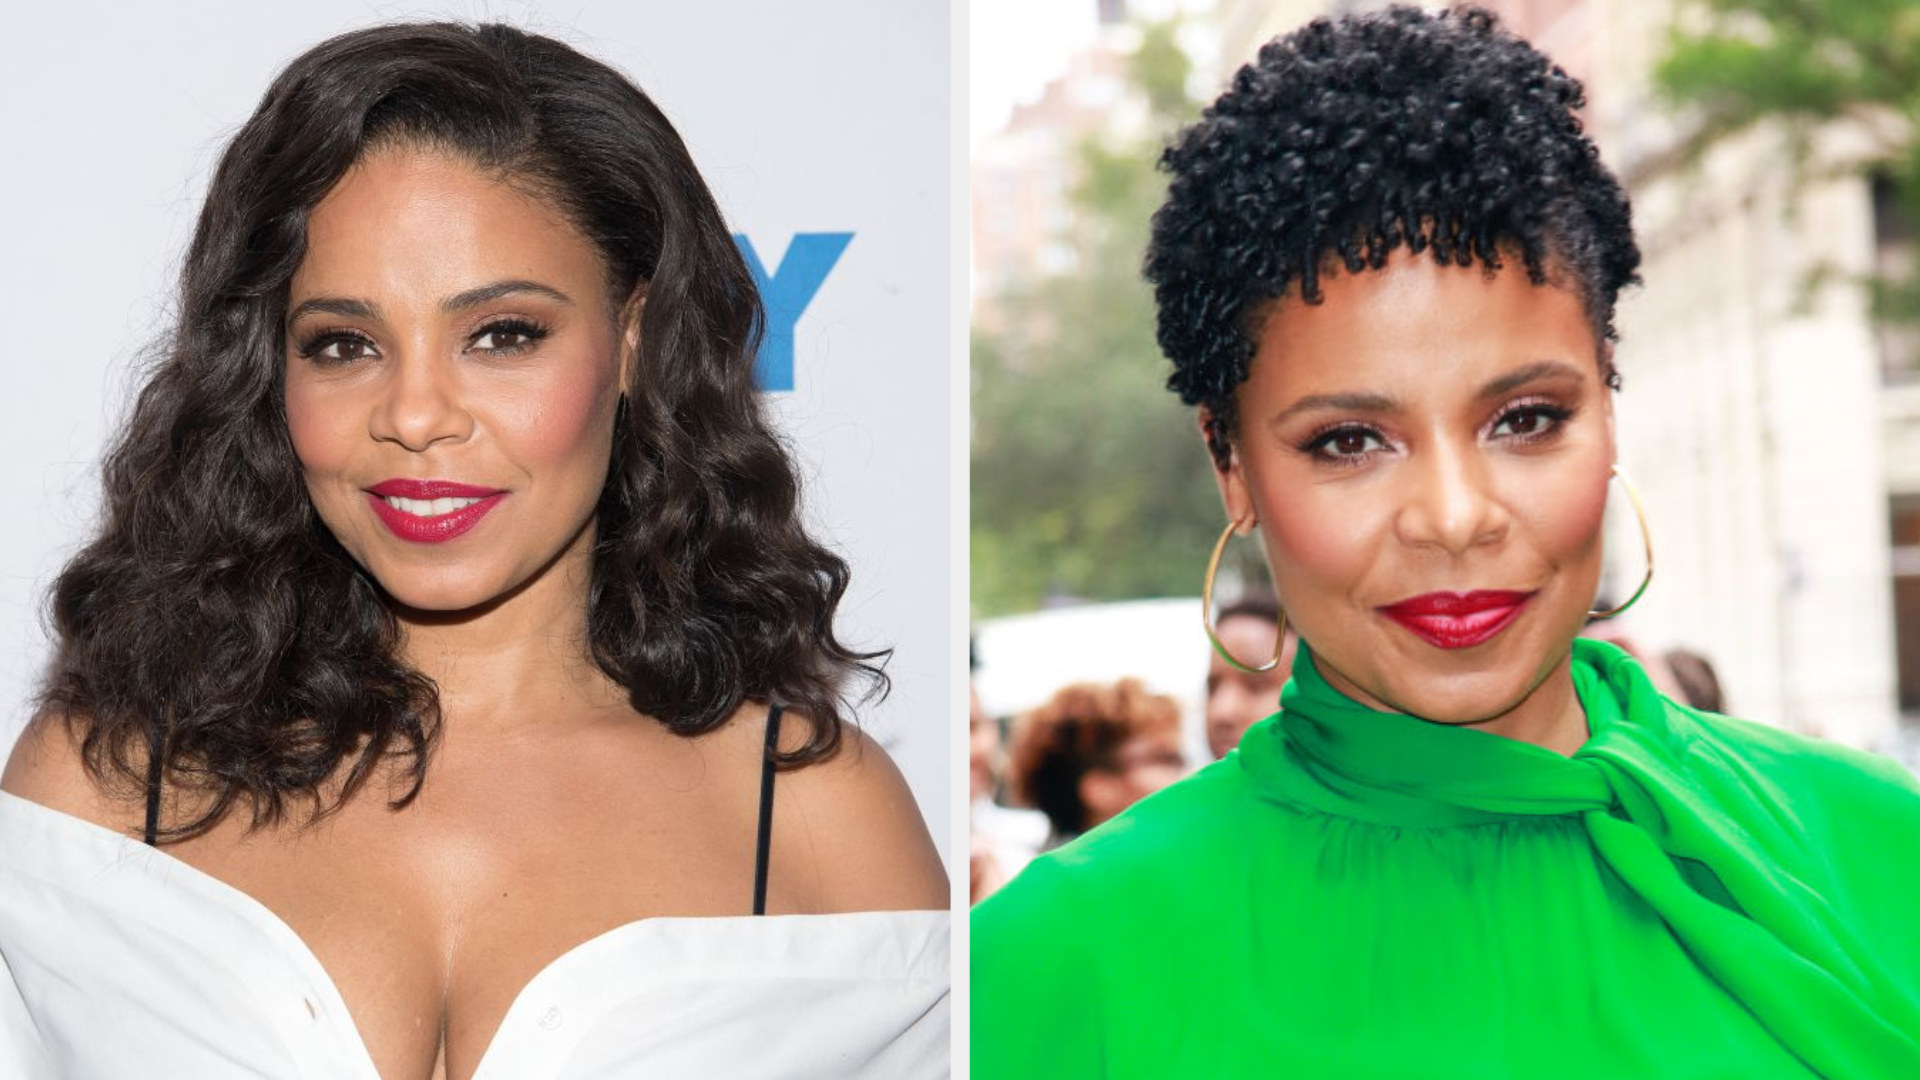 Sanaa with shoulder length black hair and Sanaa with a curly pixie cut